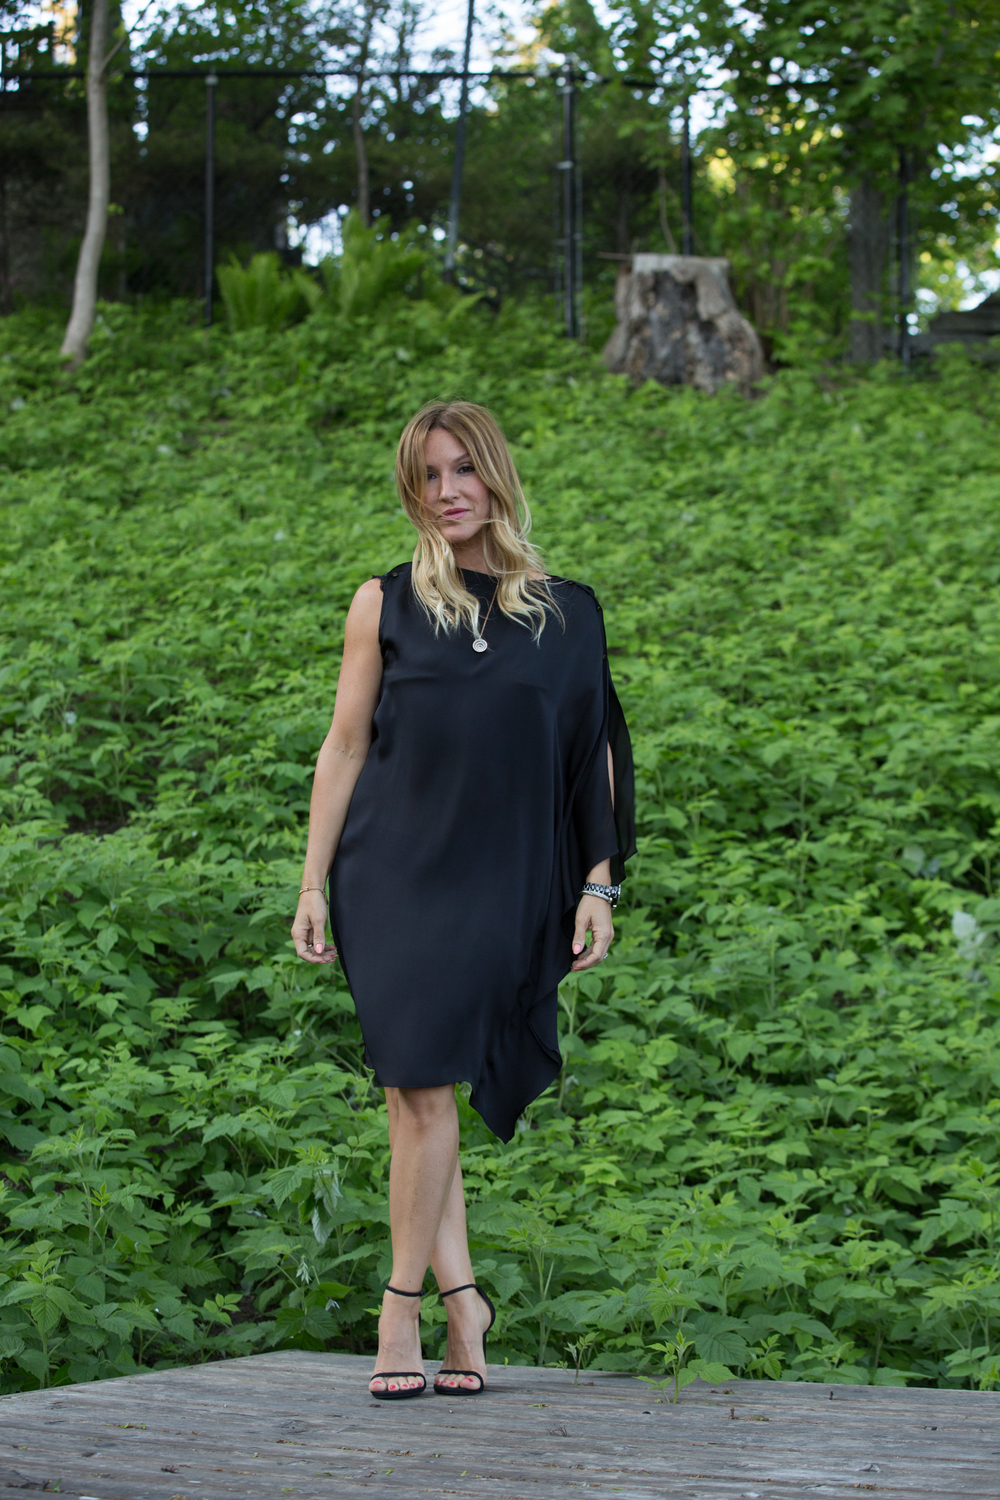 canadian fashion blogger mademoiselle jules wearing Lanving black dress LBD and nudist sandals from Stuart Weitzman